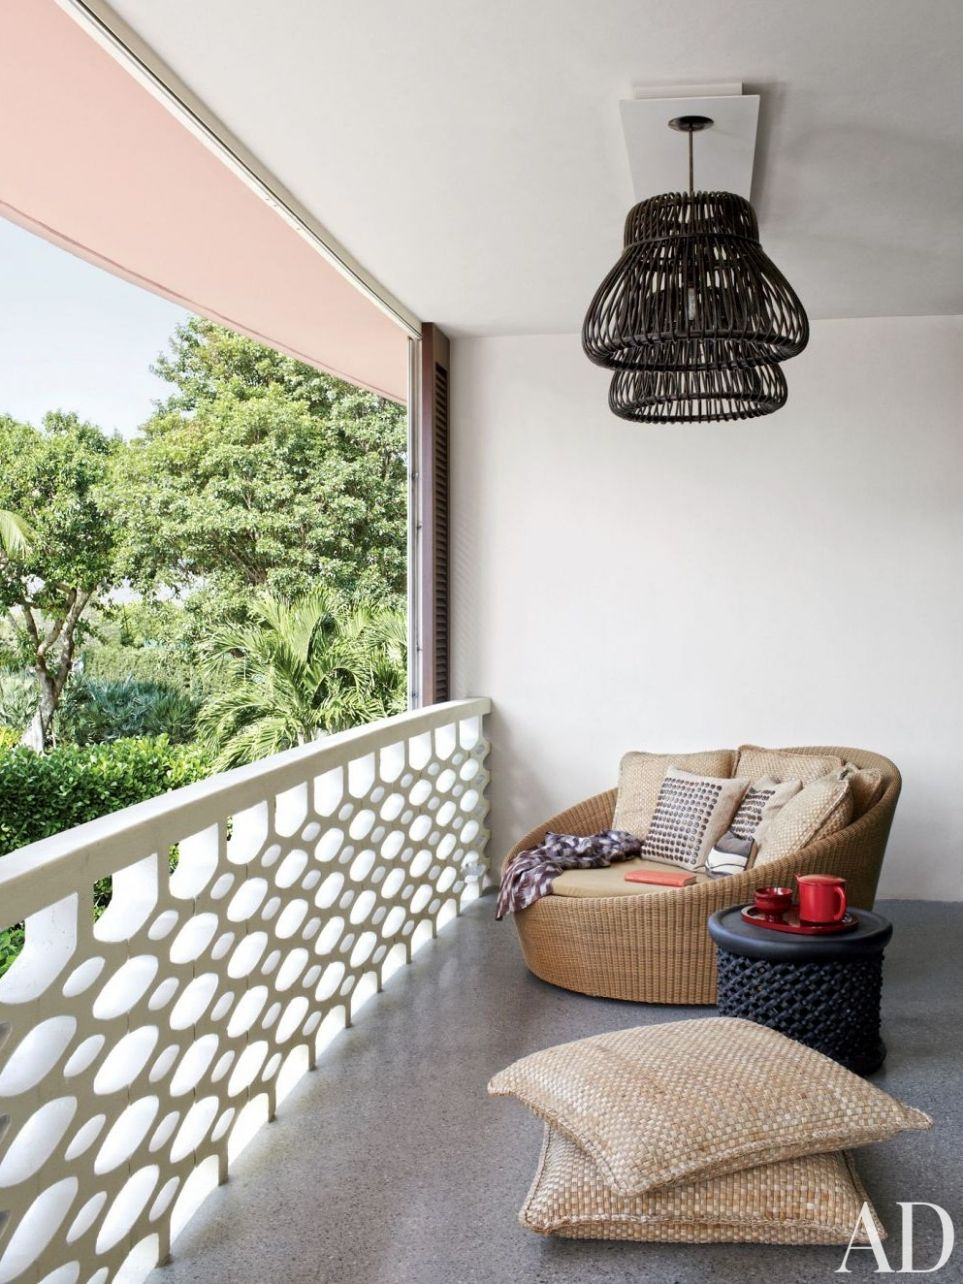 12 Cozy Balcony Ideas and Decor Inspiration | Architectural Digest - balcony makeover ideas